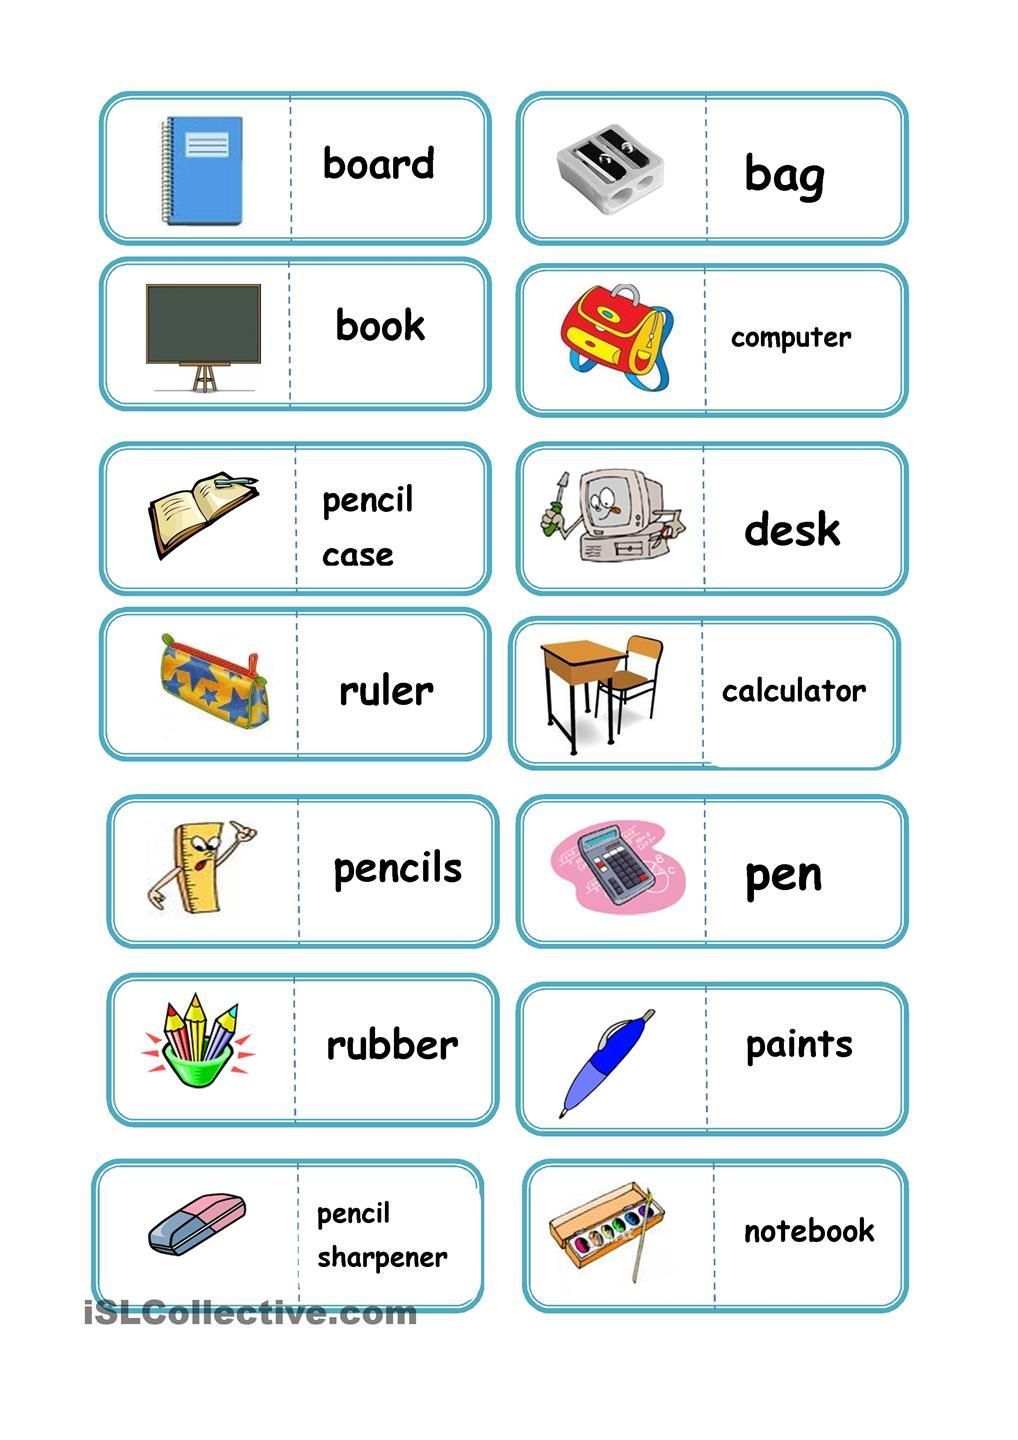 school domino | Games | Pinterest | School, English and Gaming